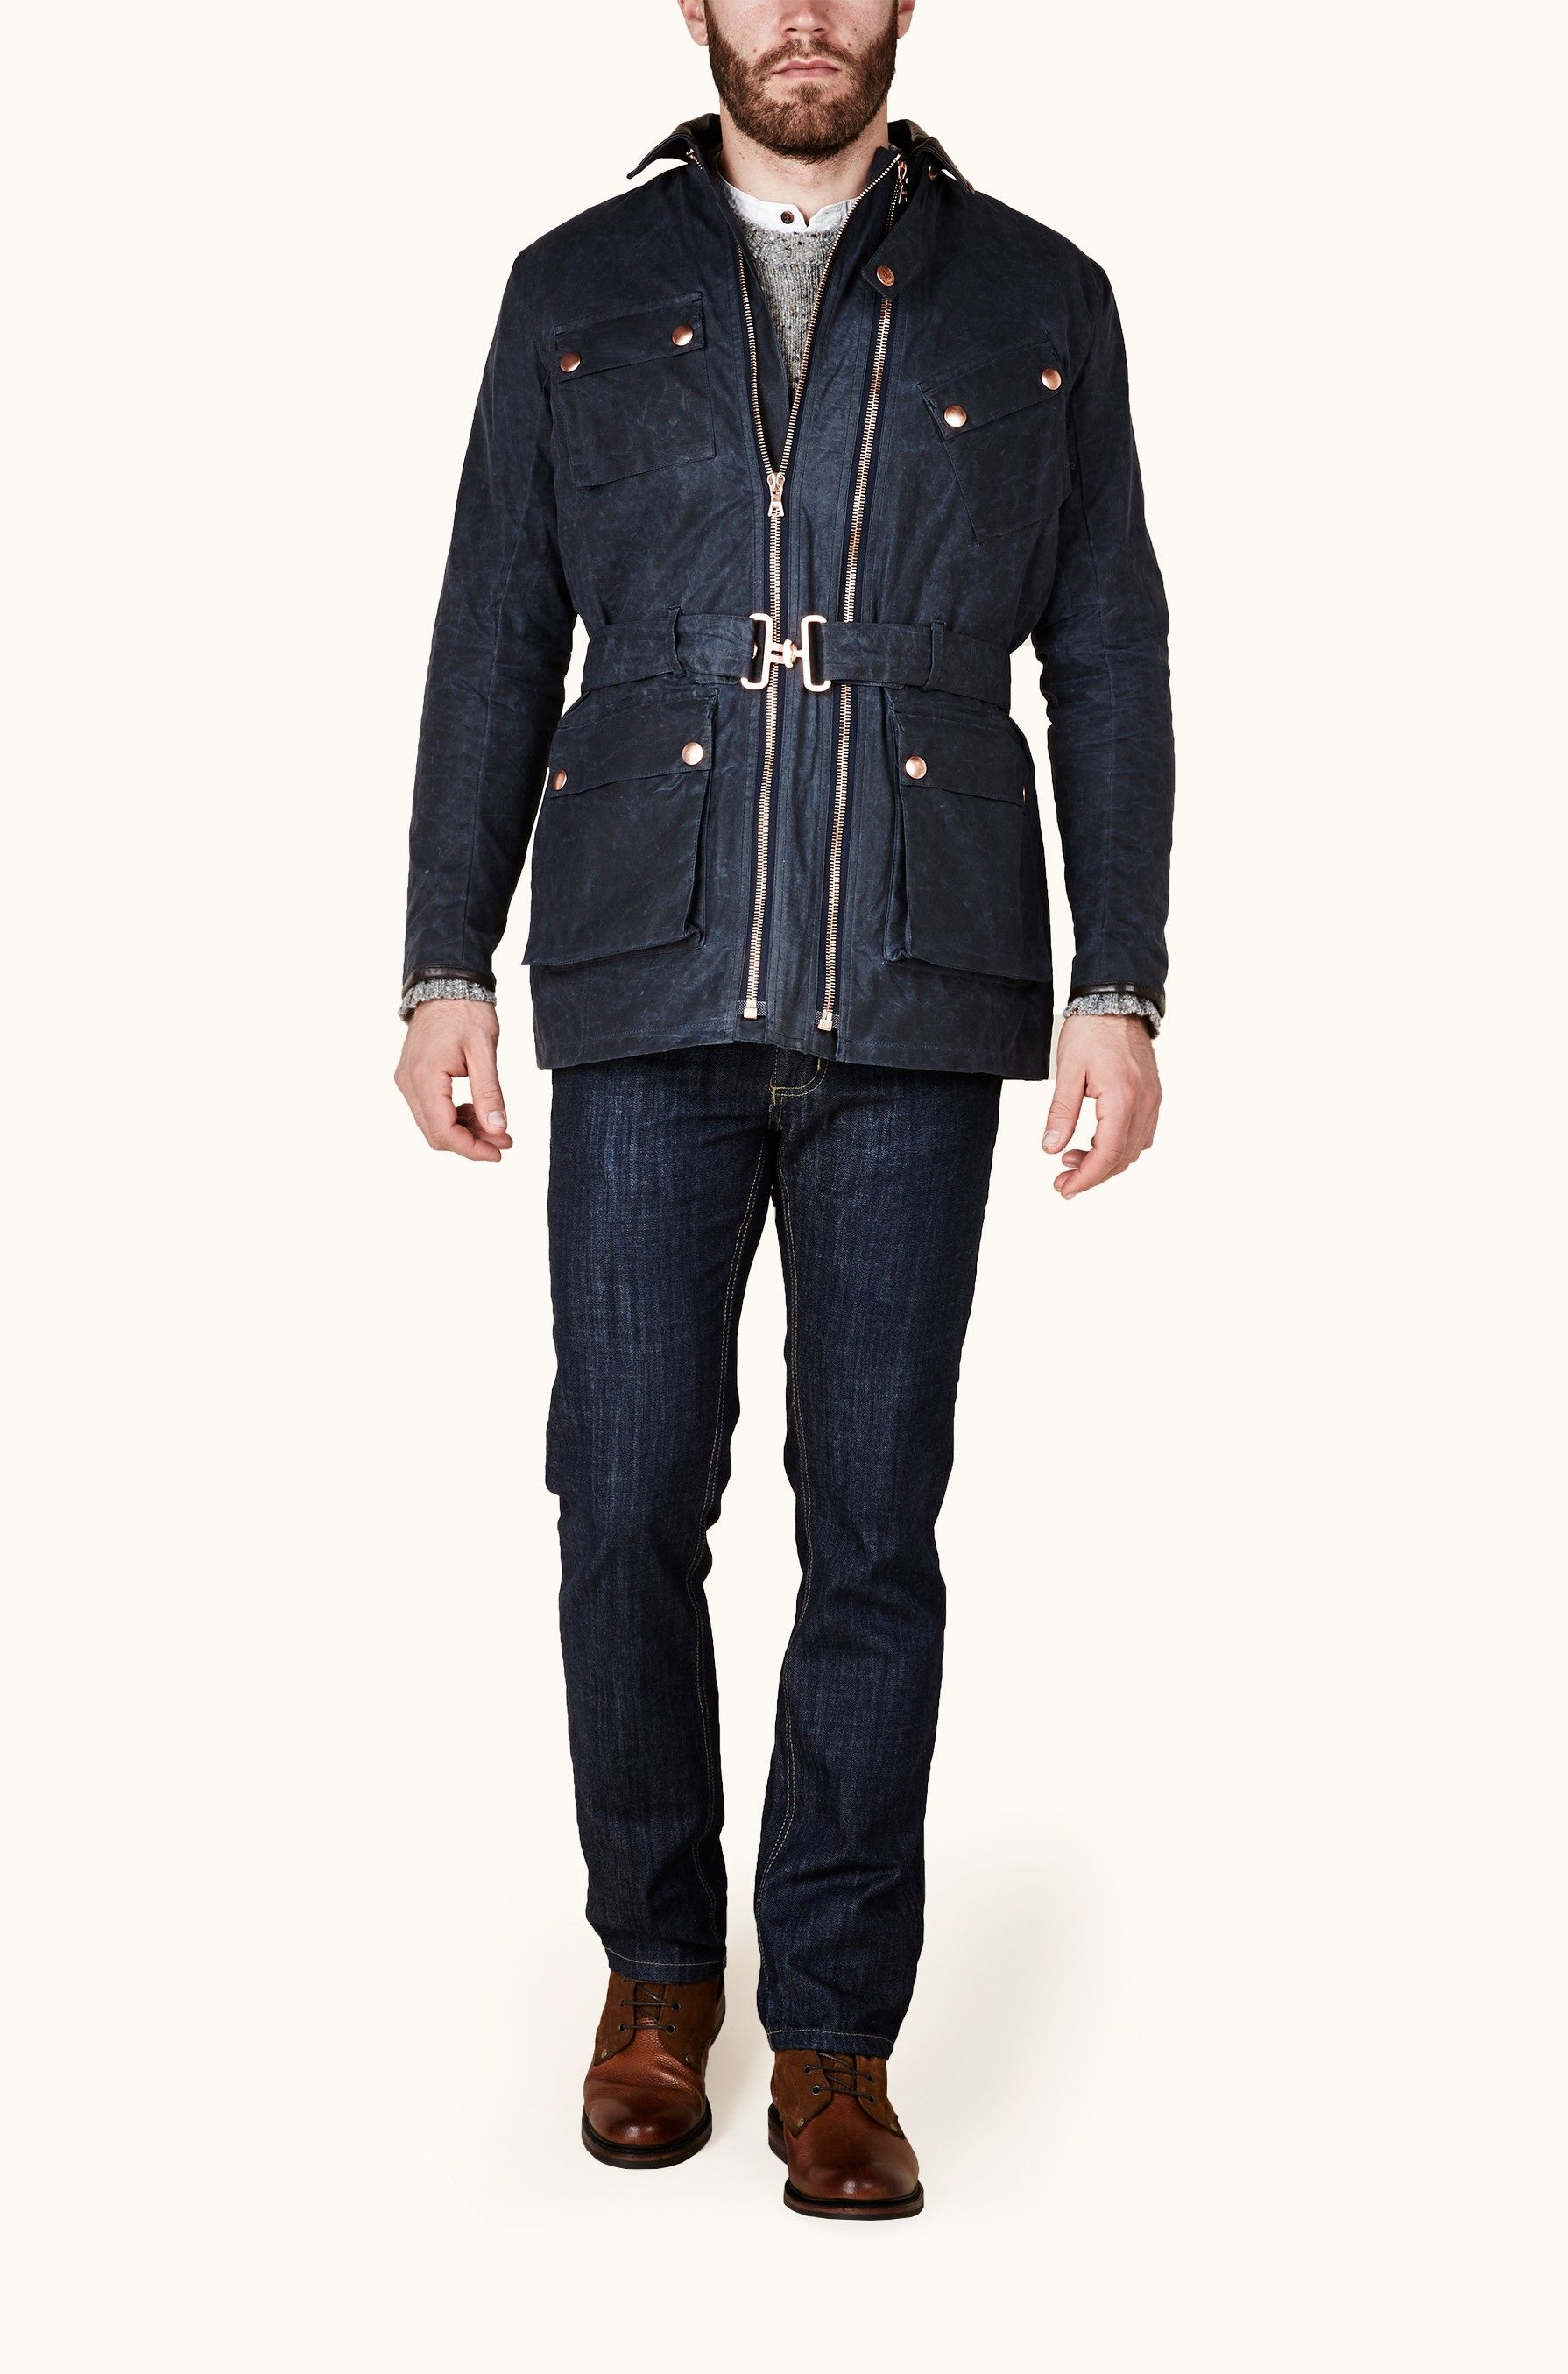 Twin Track Navy Beeswax Track Jackets Clothes Jackets